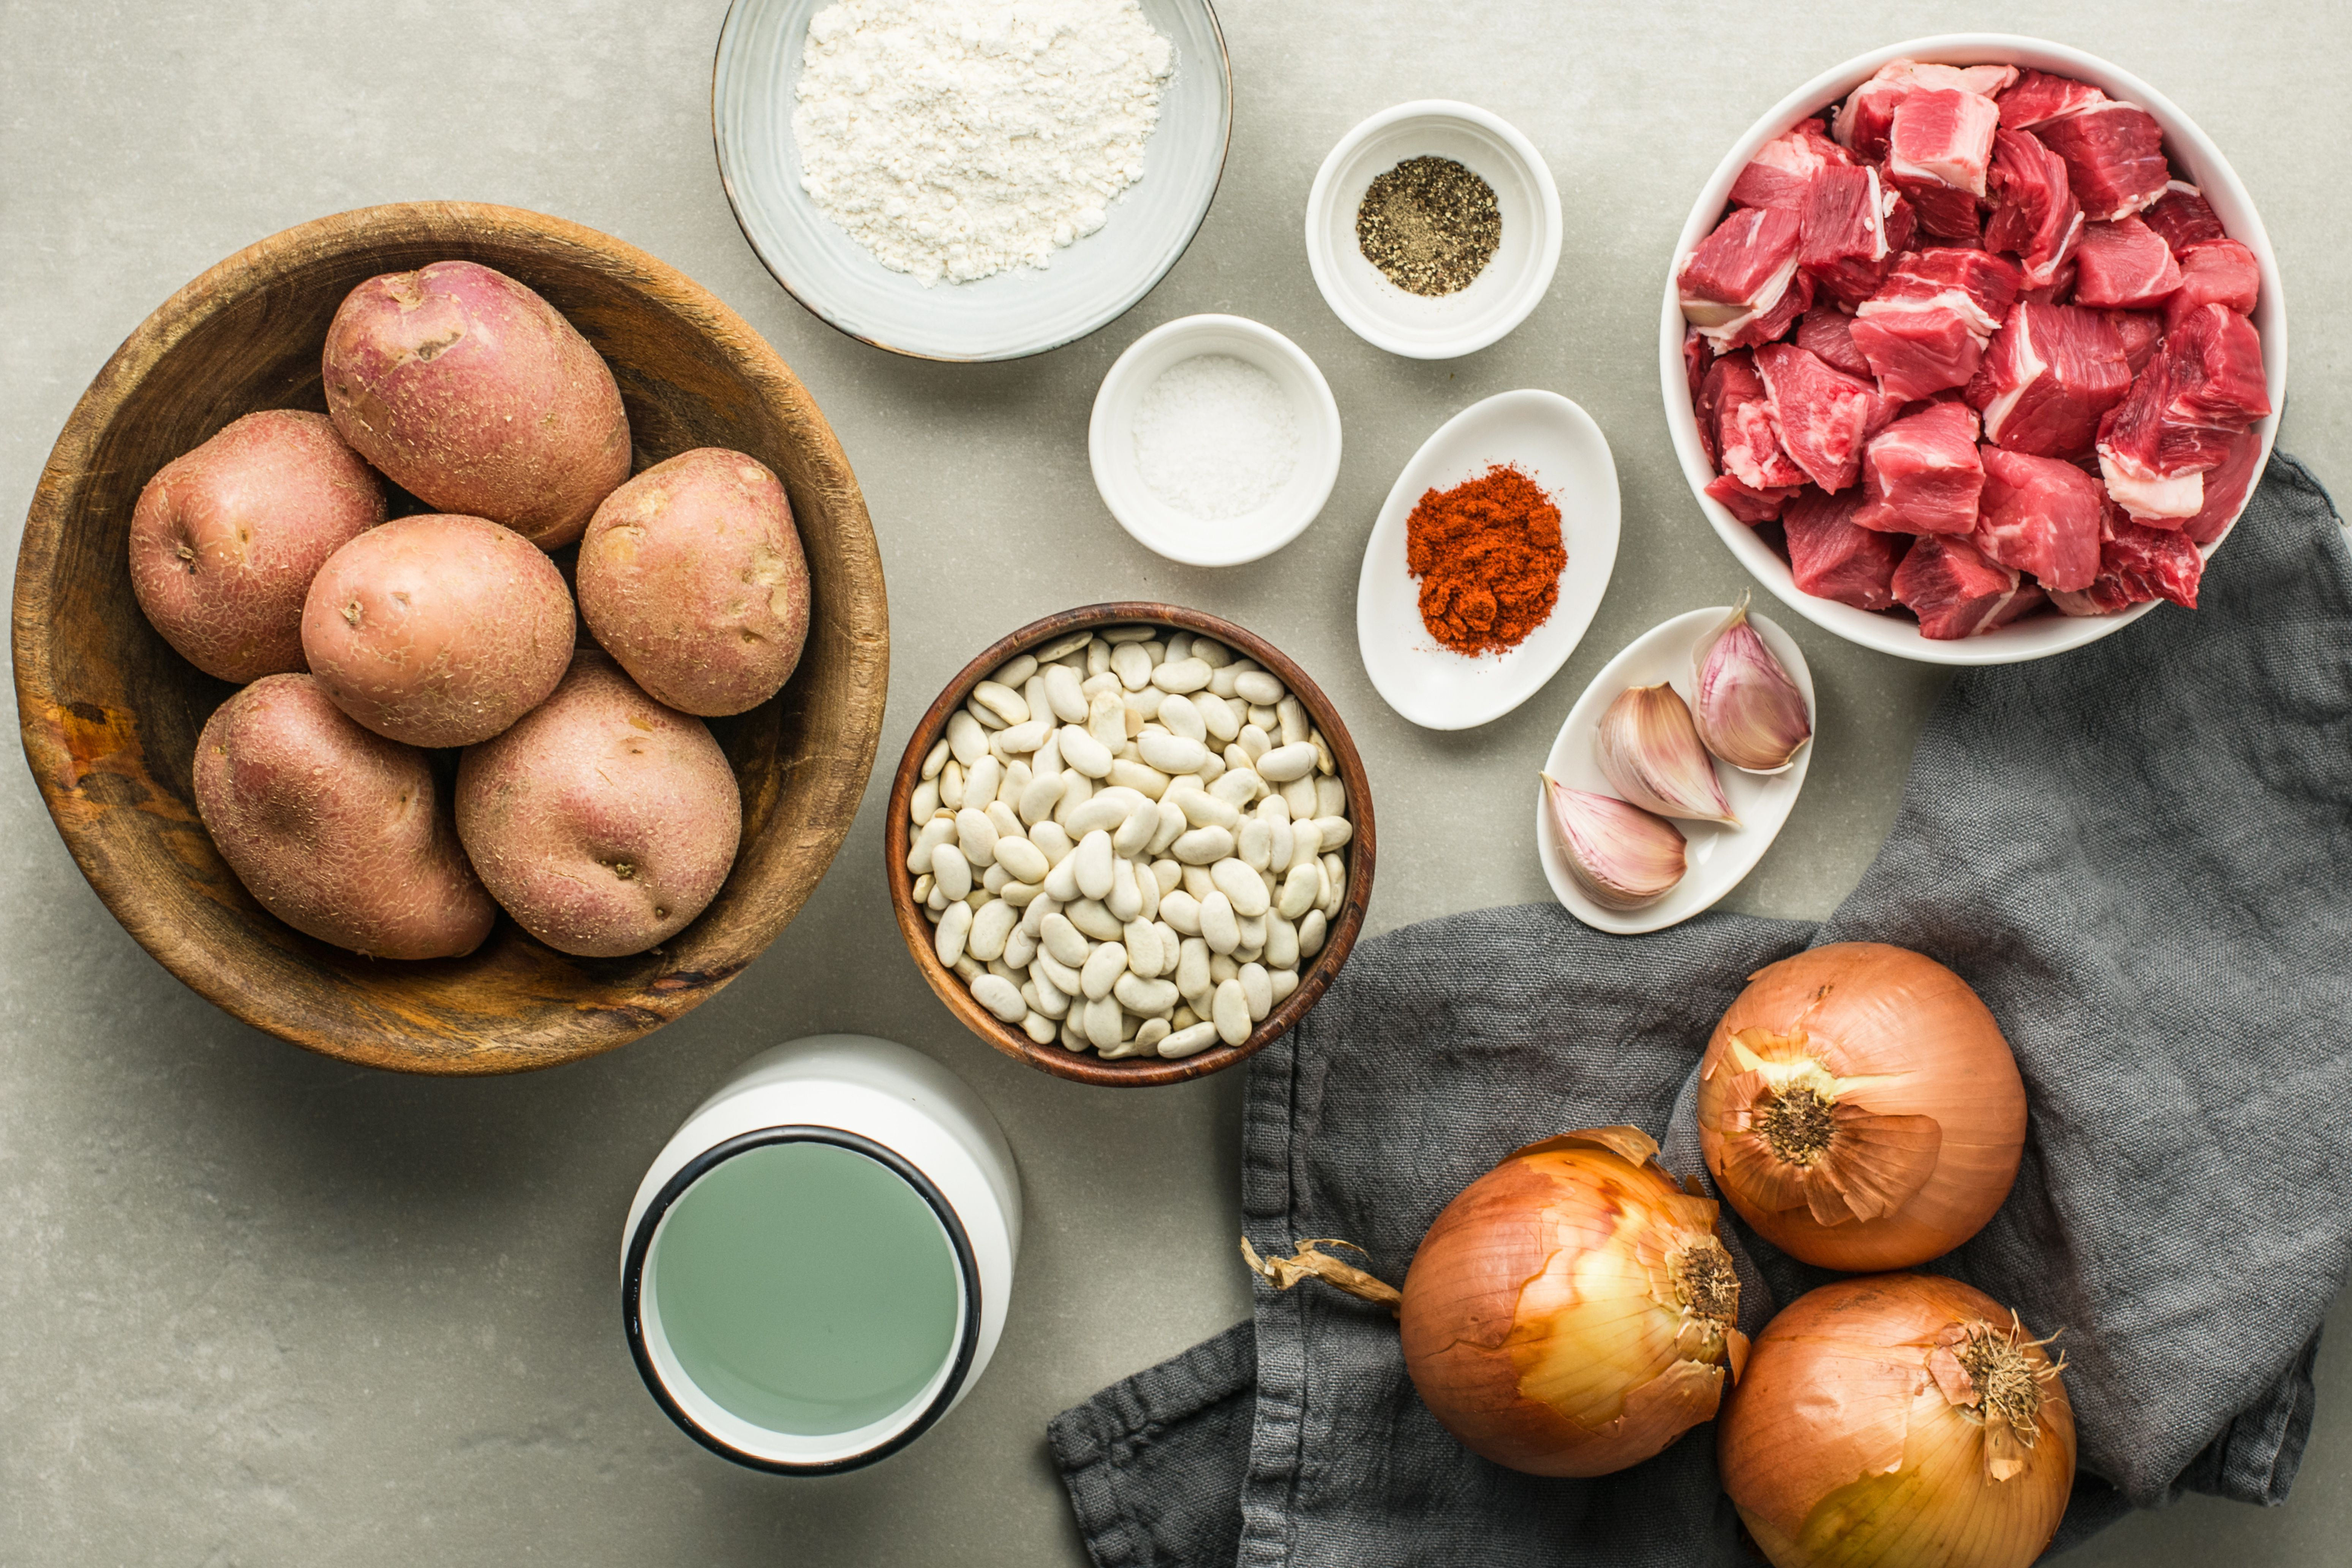 Ingredients for kosher traditional meat cholent